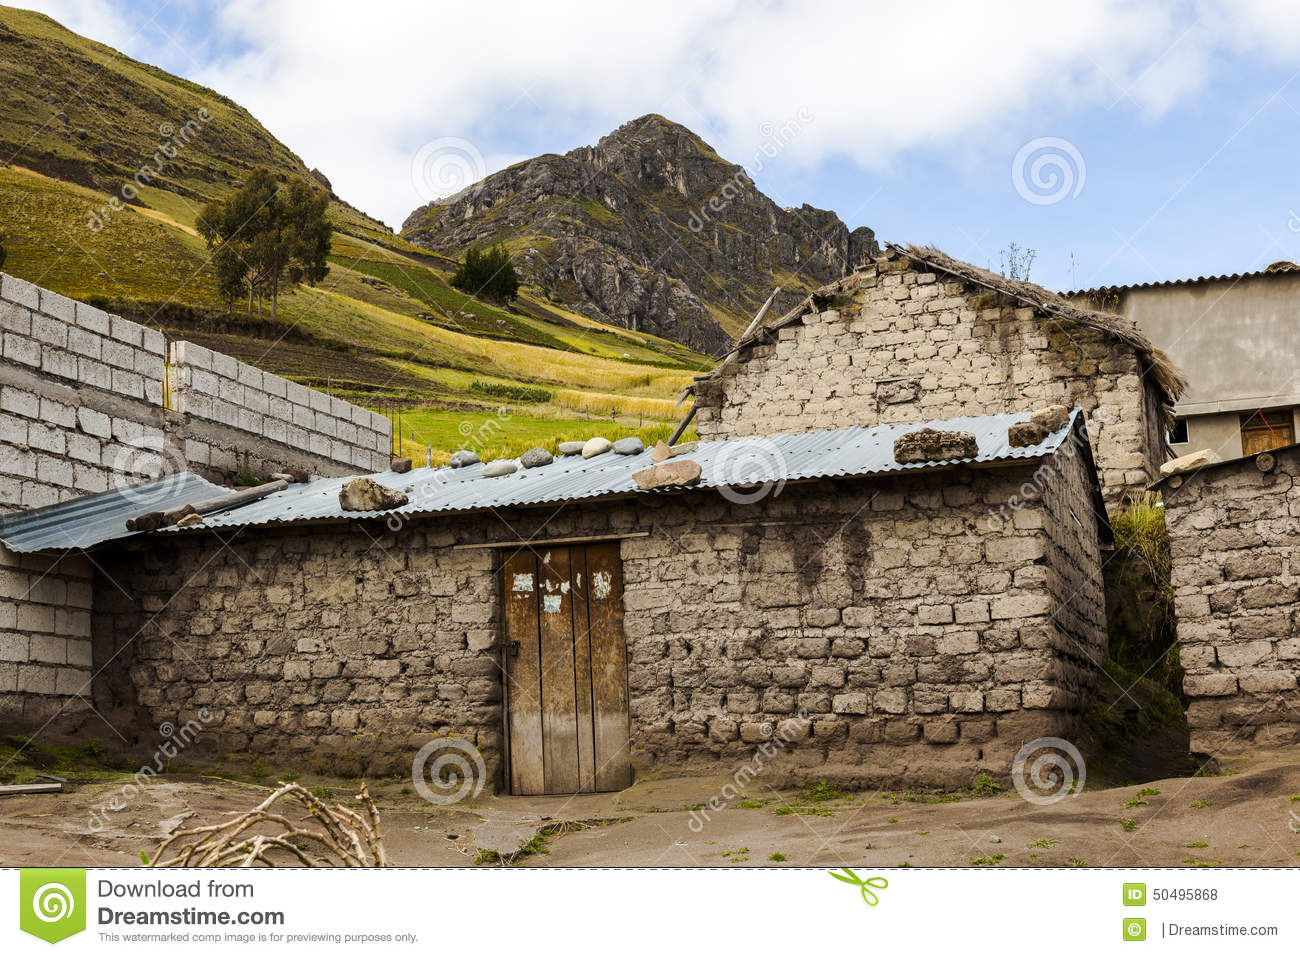 Adobe house with a zinc roof around zumbahua stock photo for Adobe roof